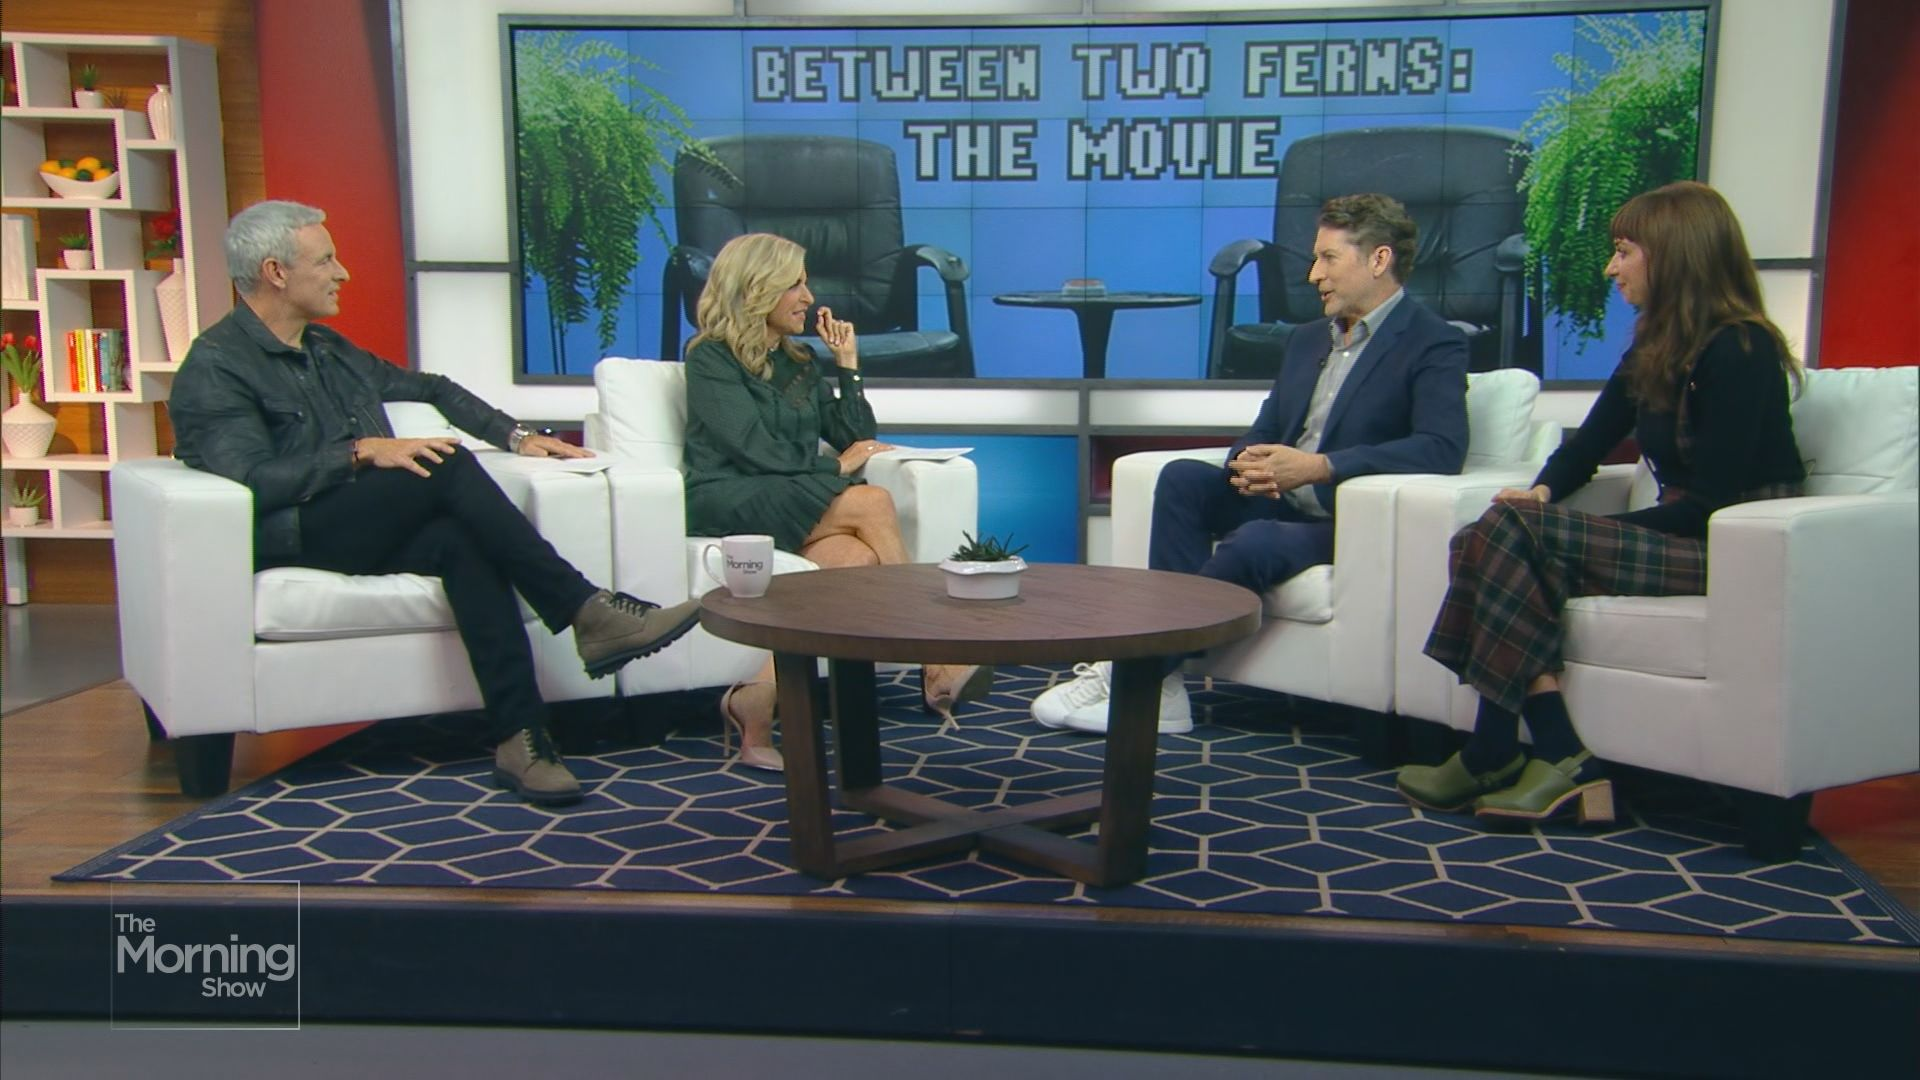 Who's in the 'Between Two Ferns' movie?